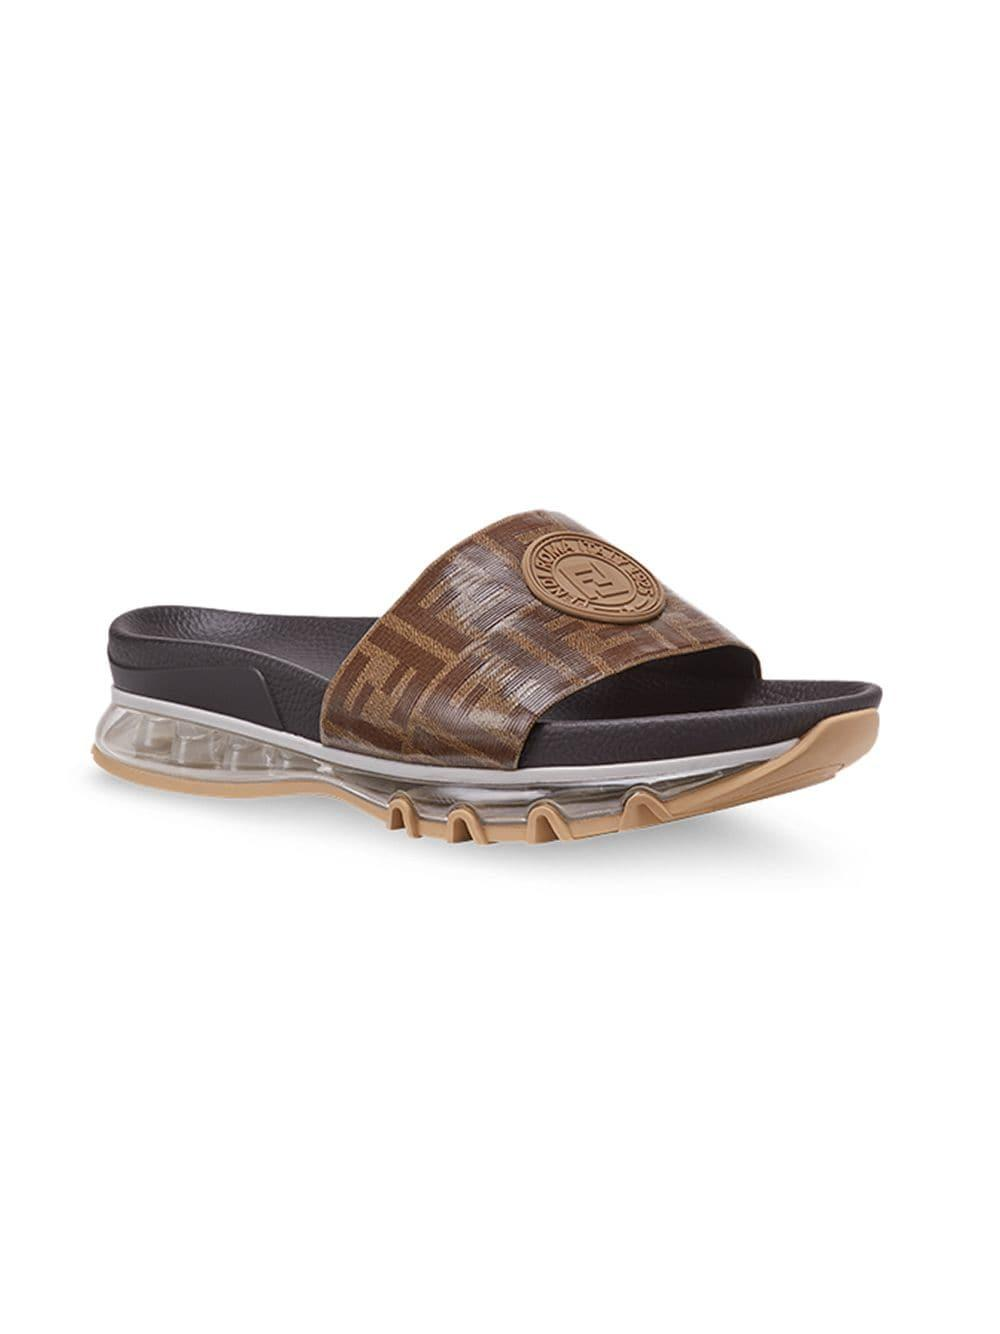 6b9e7eaf9 Lyst - Fendi Logo-patch Sandals in Brown for Men